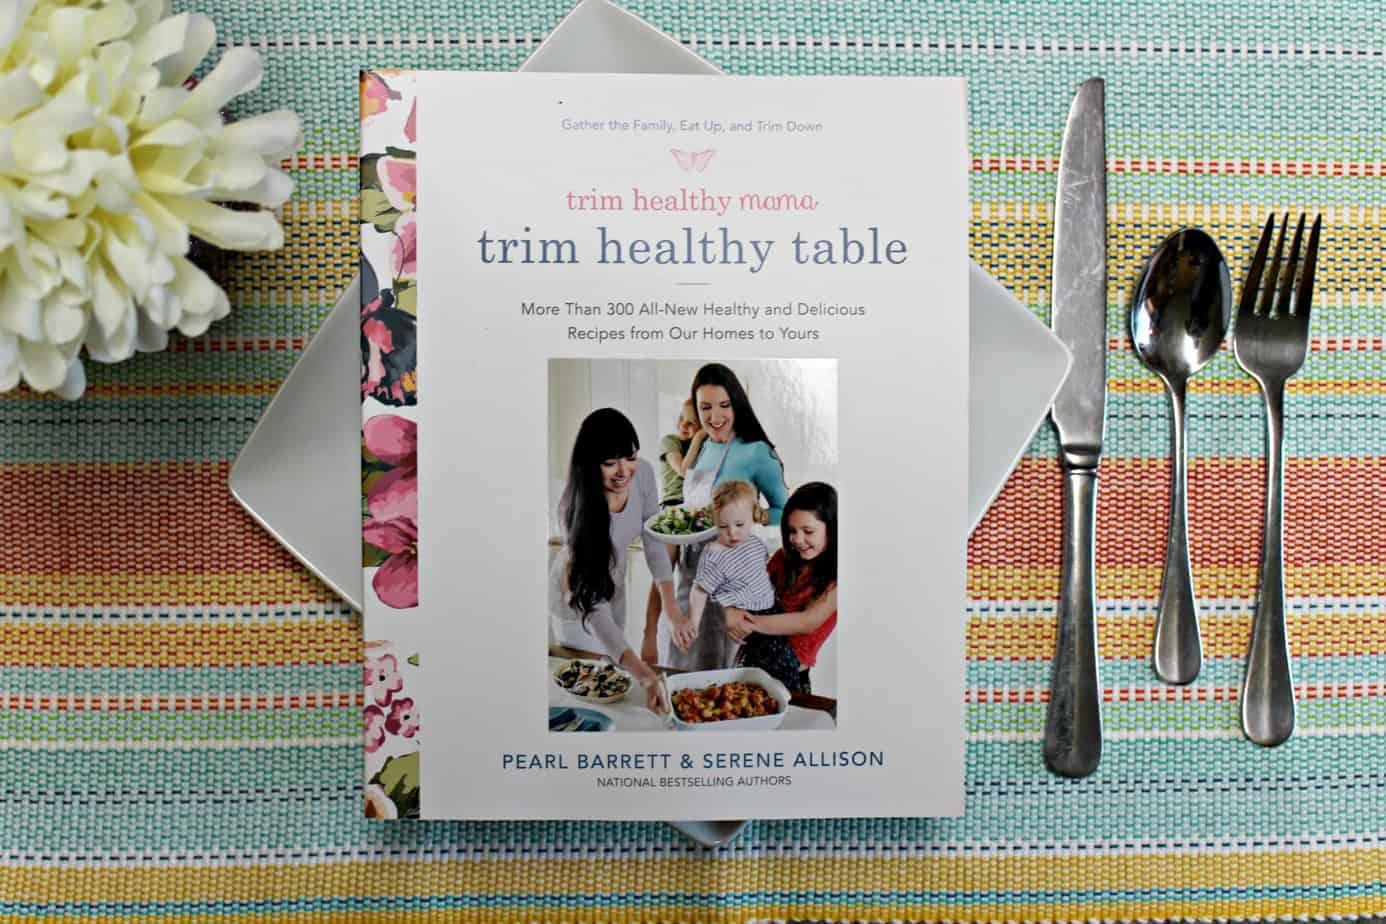 Trim Healthy Mama's Trim Healthy Table Cookbook #TrimHealthyTable